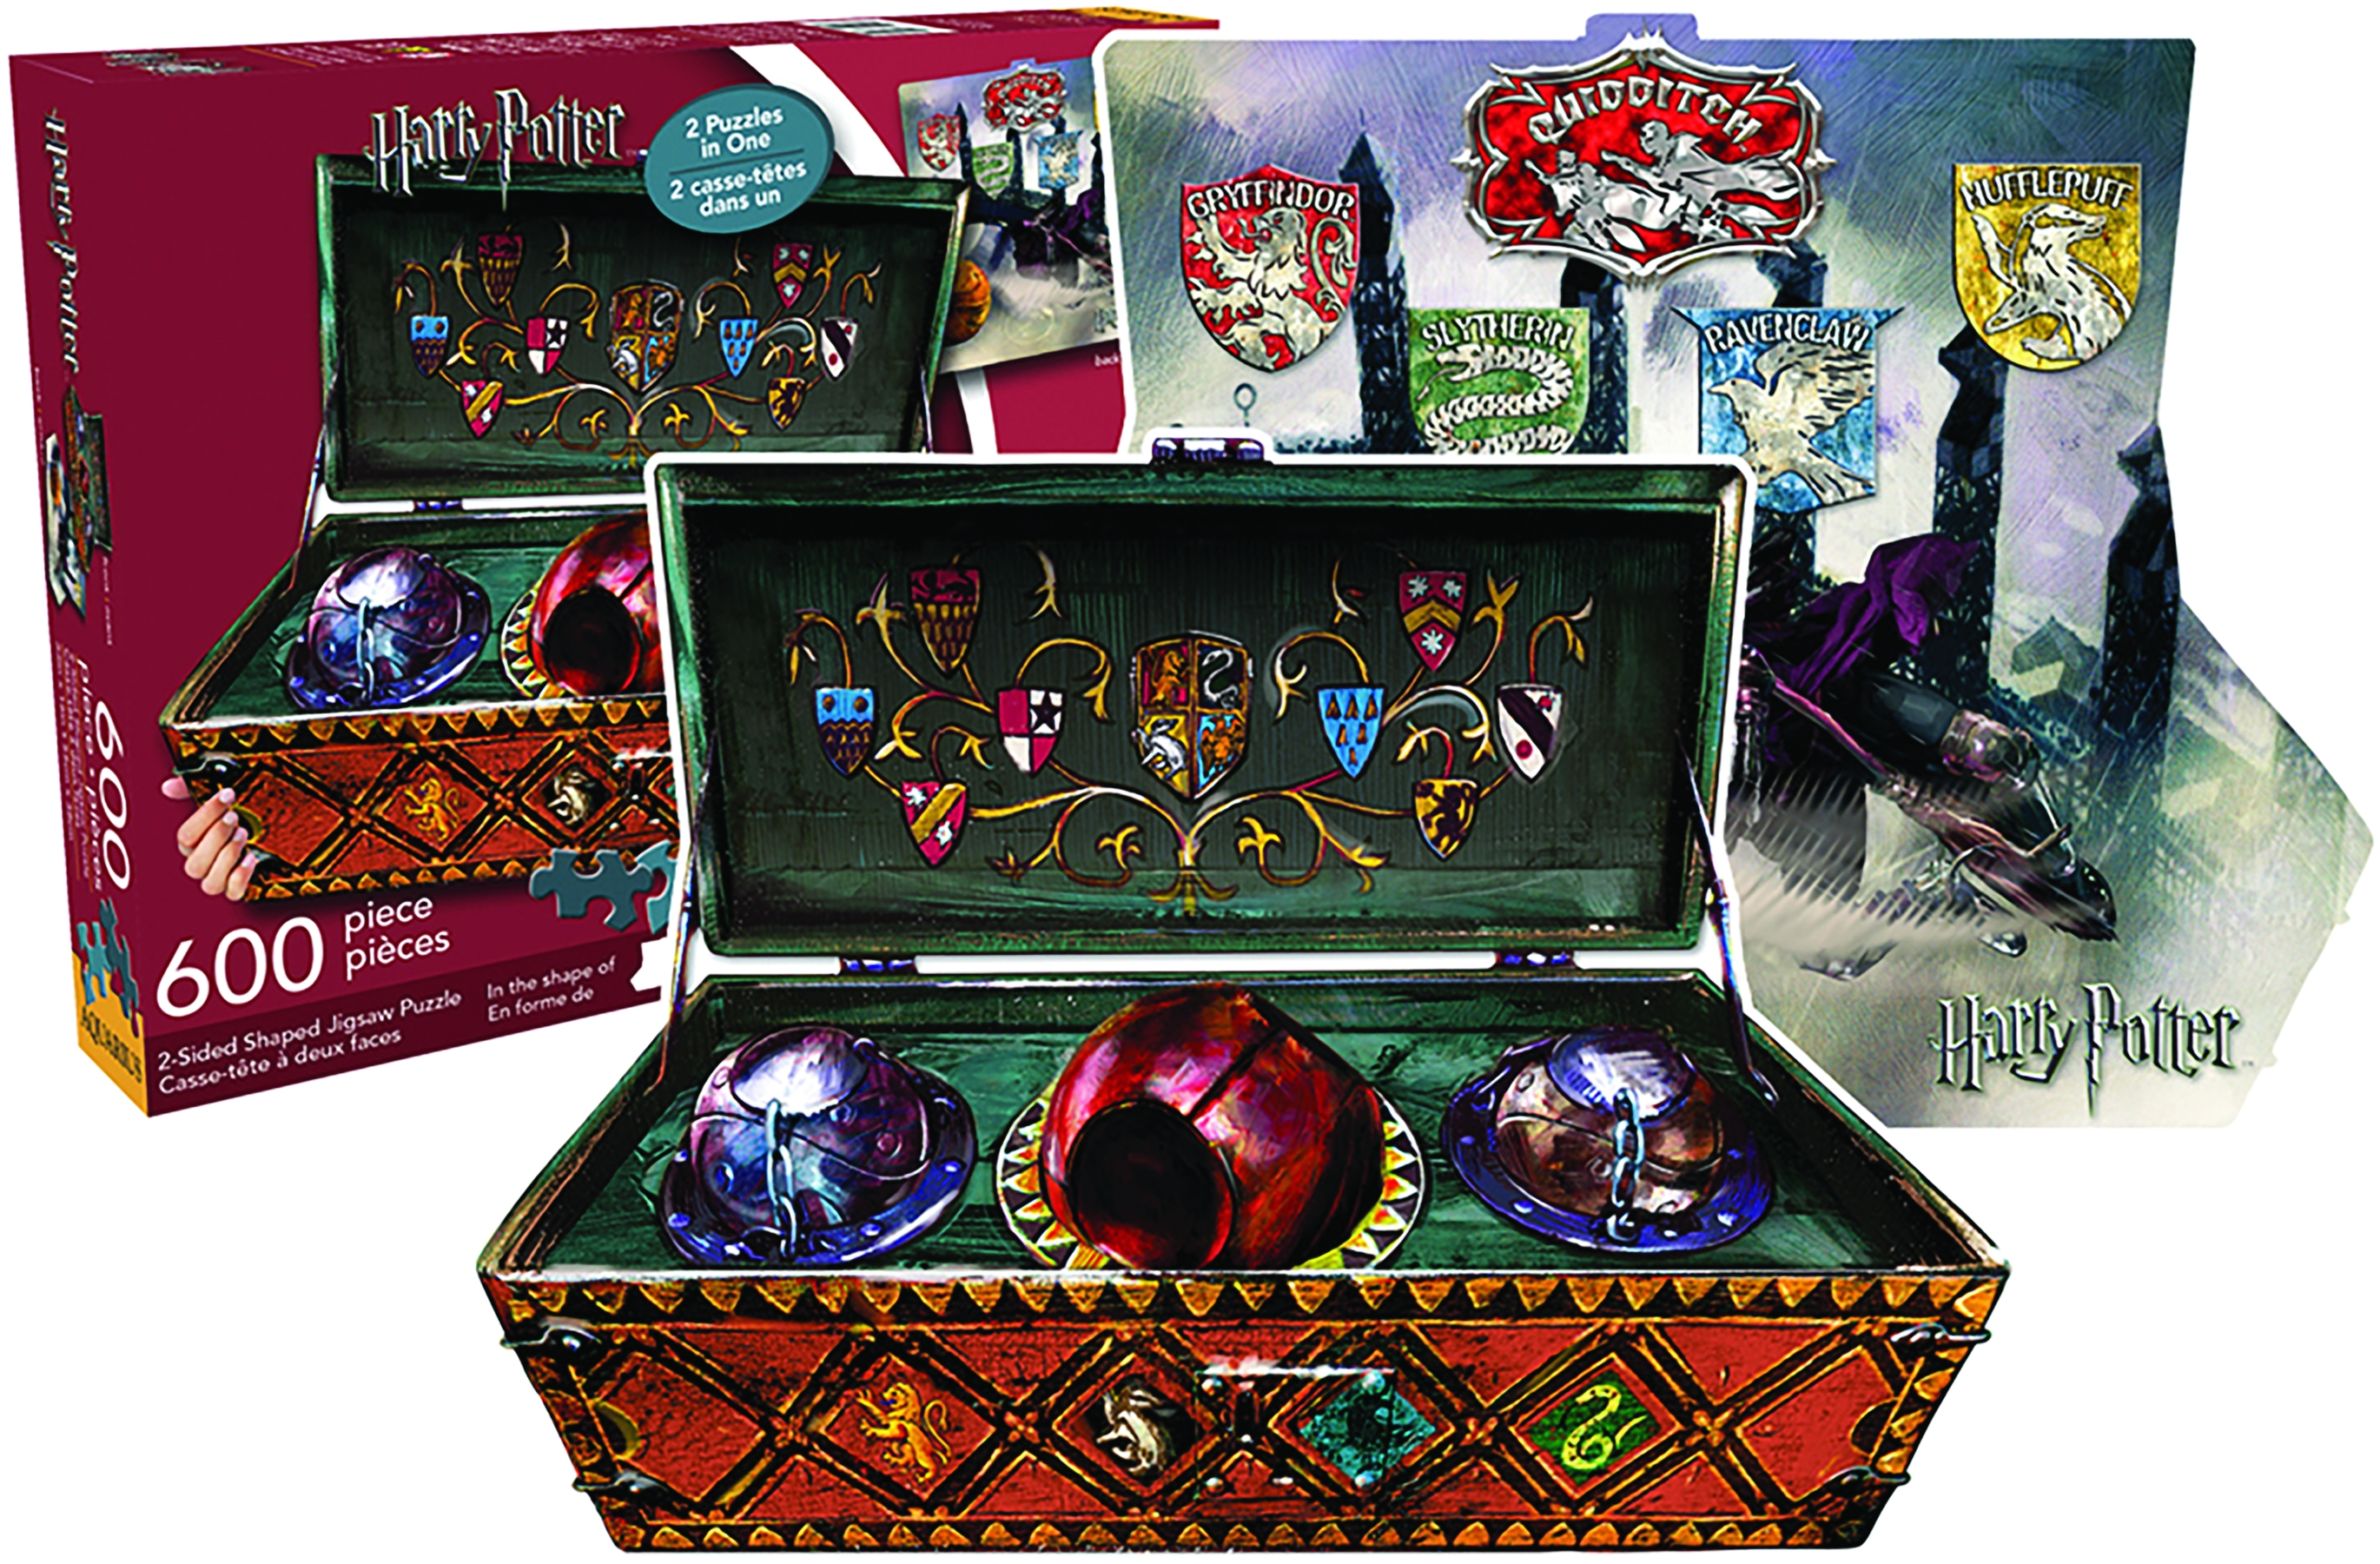 Harry Potter: 2 Sided 600 Piece Diecut Jigsaw Puzzle